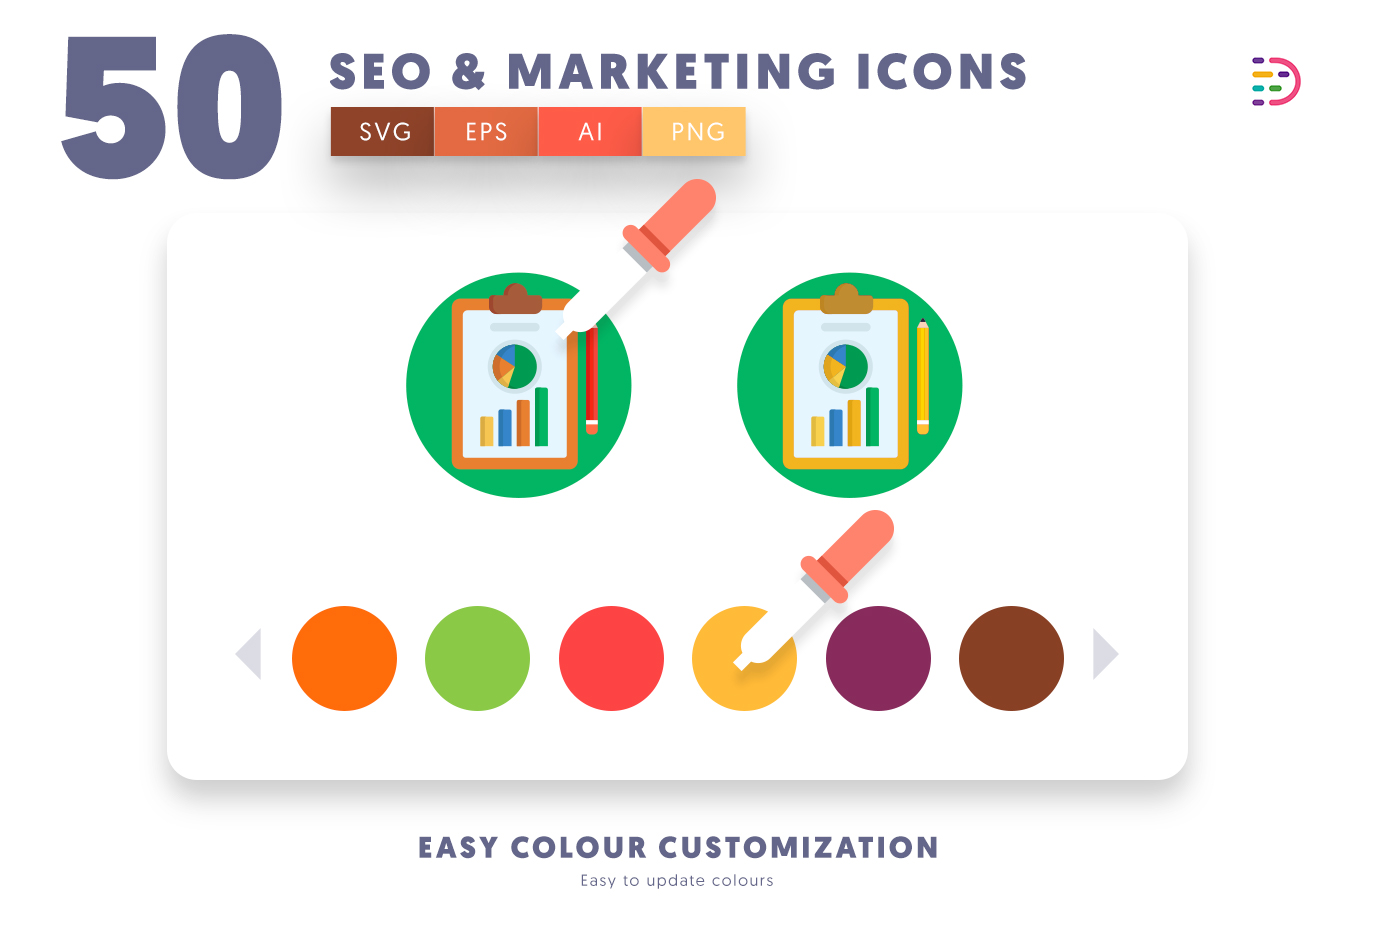 Customizable and vector 50 Seo & Marketing Icons